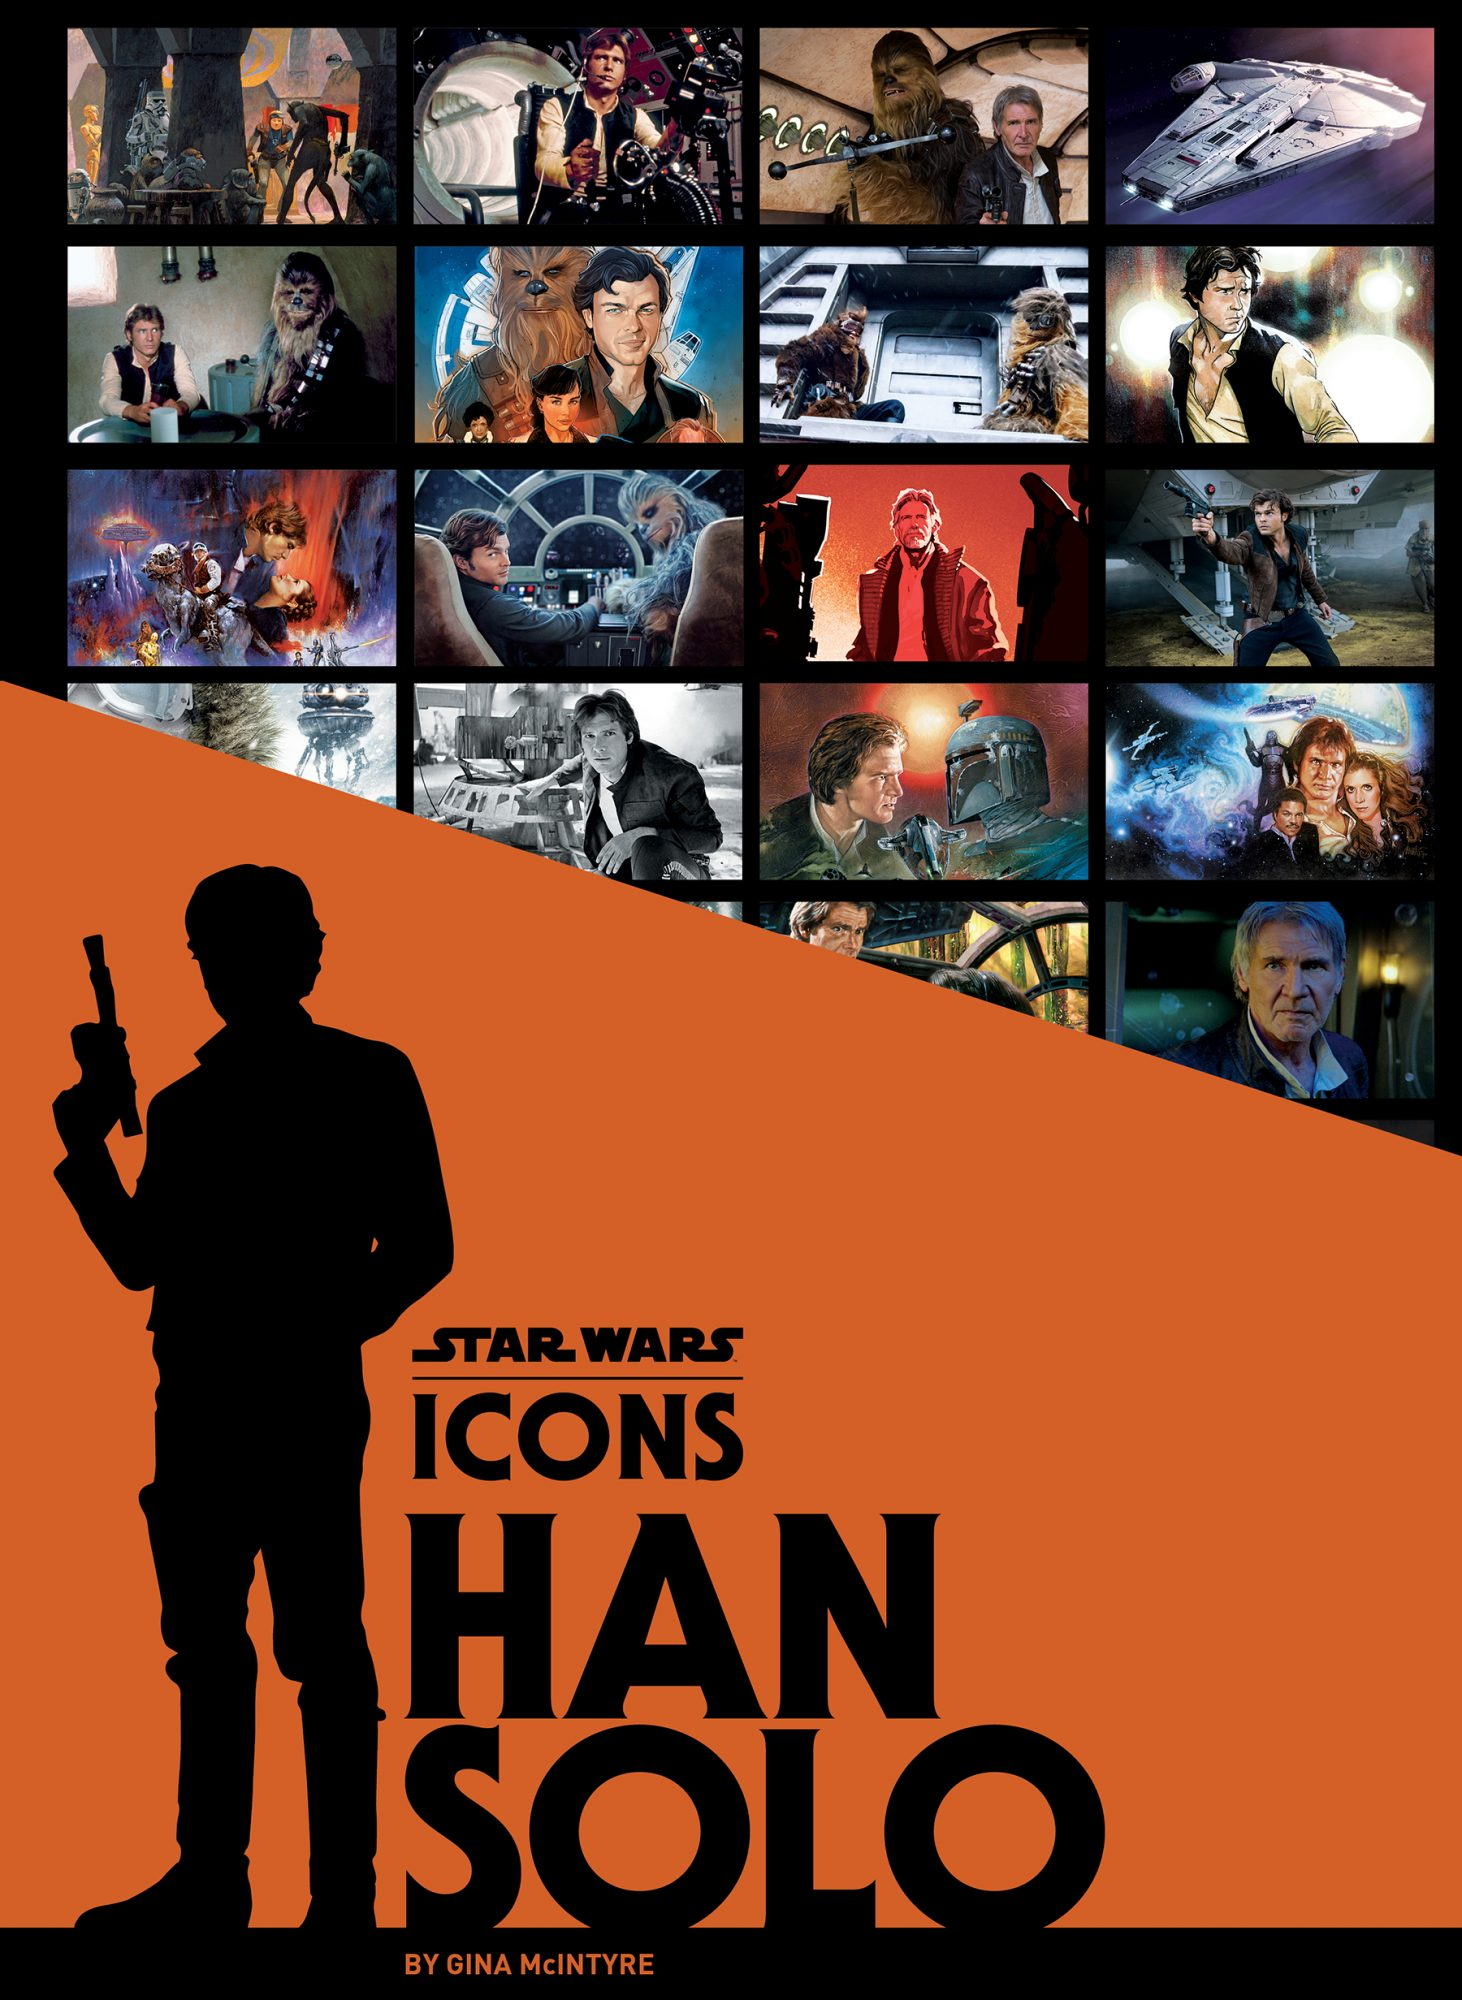 Star Wars Icons: Han Solo by Gina McIntyreCredit: Insight Editions